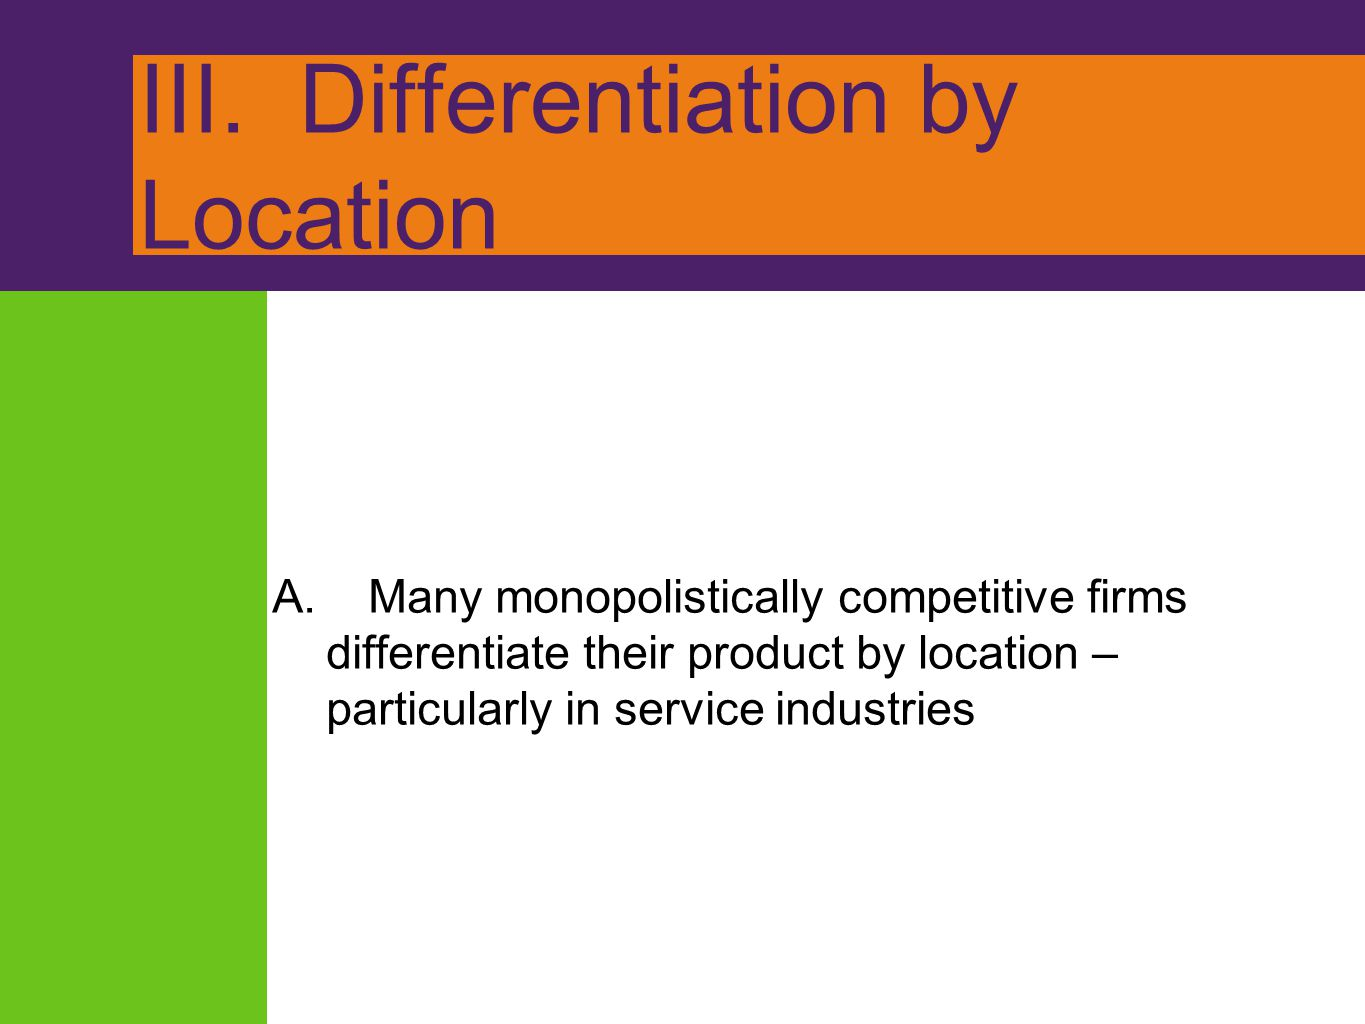 III. Differentiation by Location